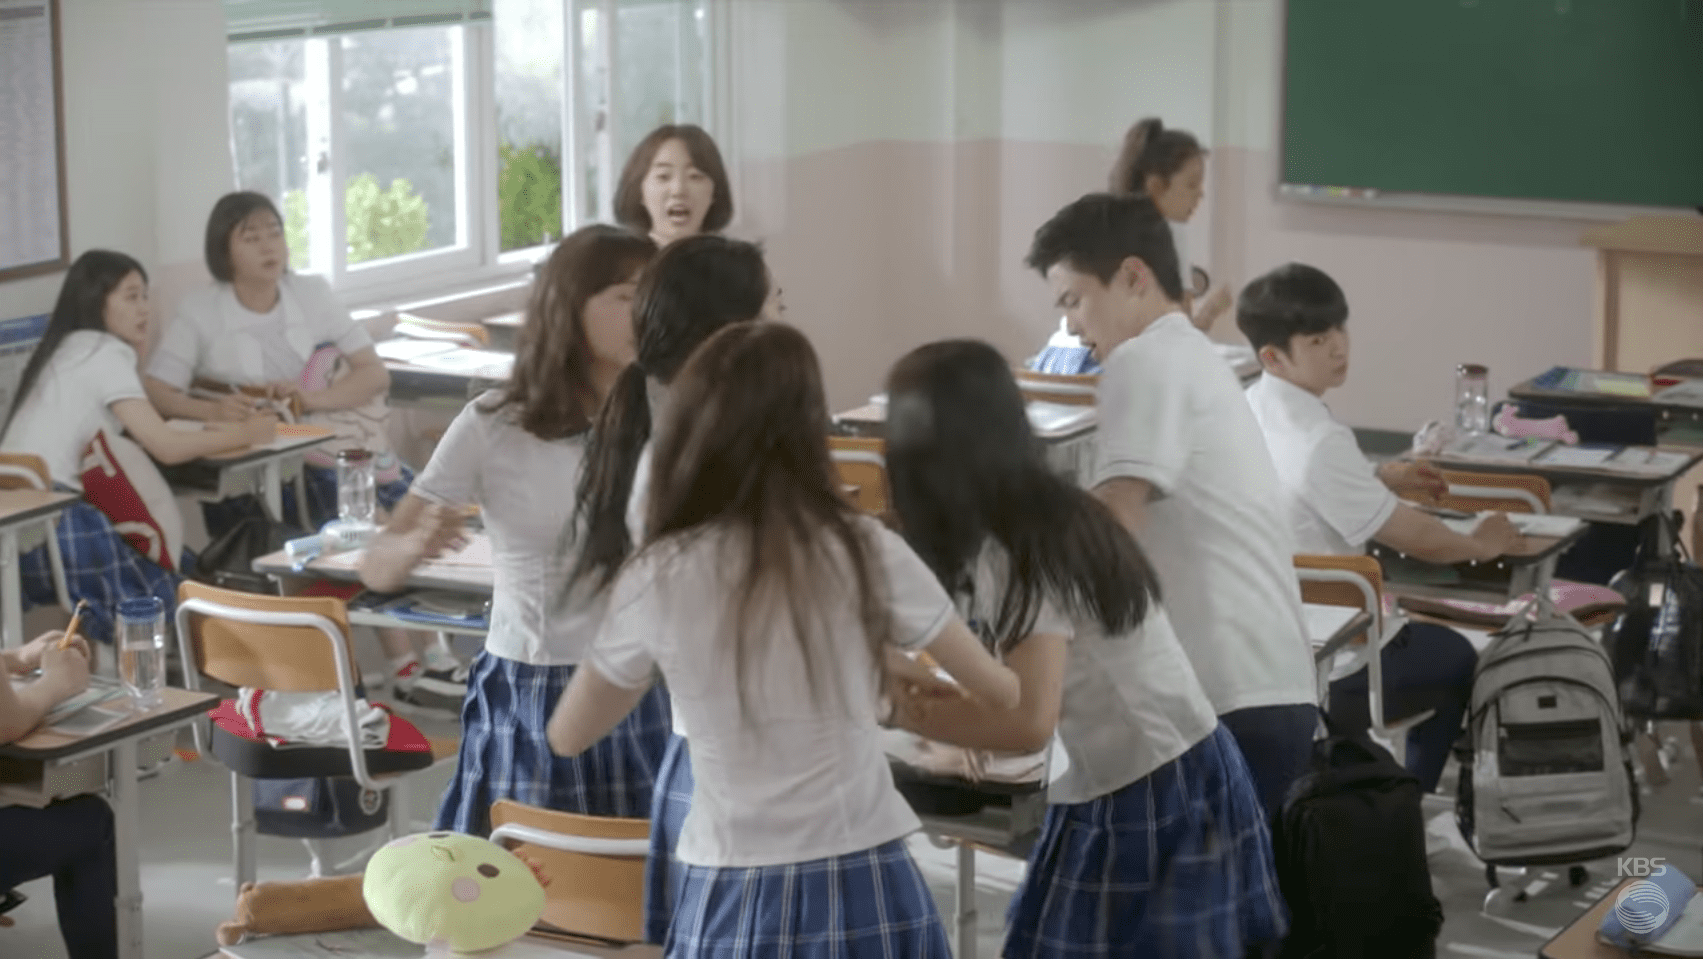 Watch: Fights Break Out Between Students, Teachers, And More In New School 2017 Teaser